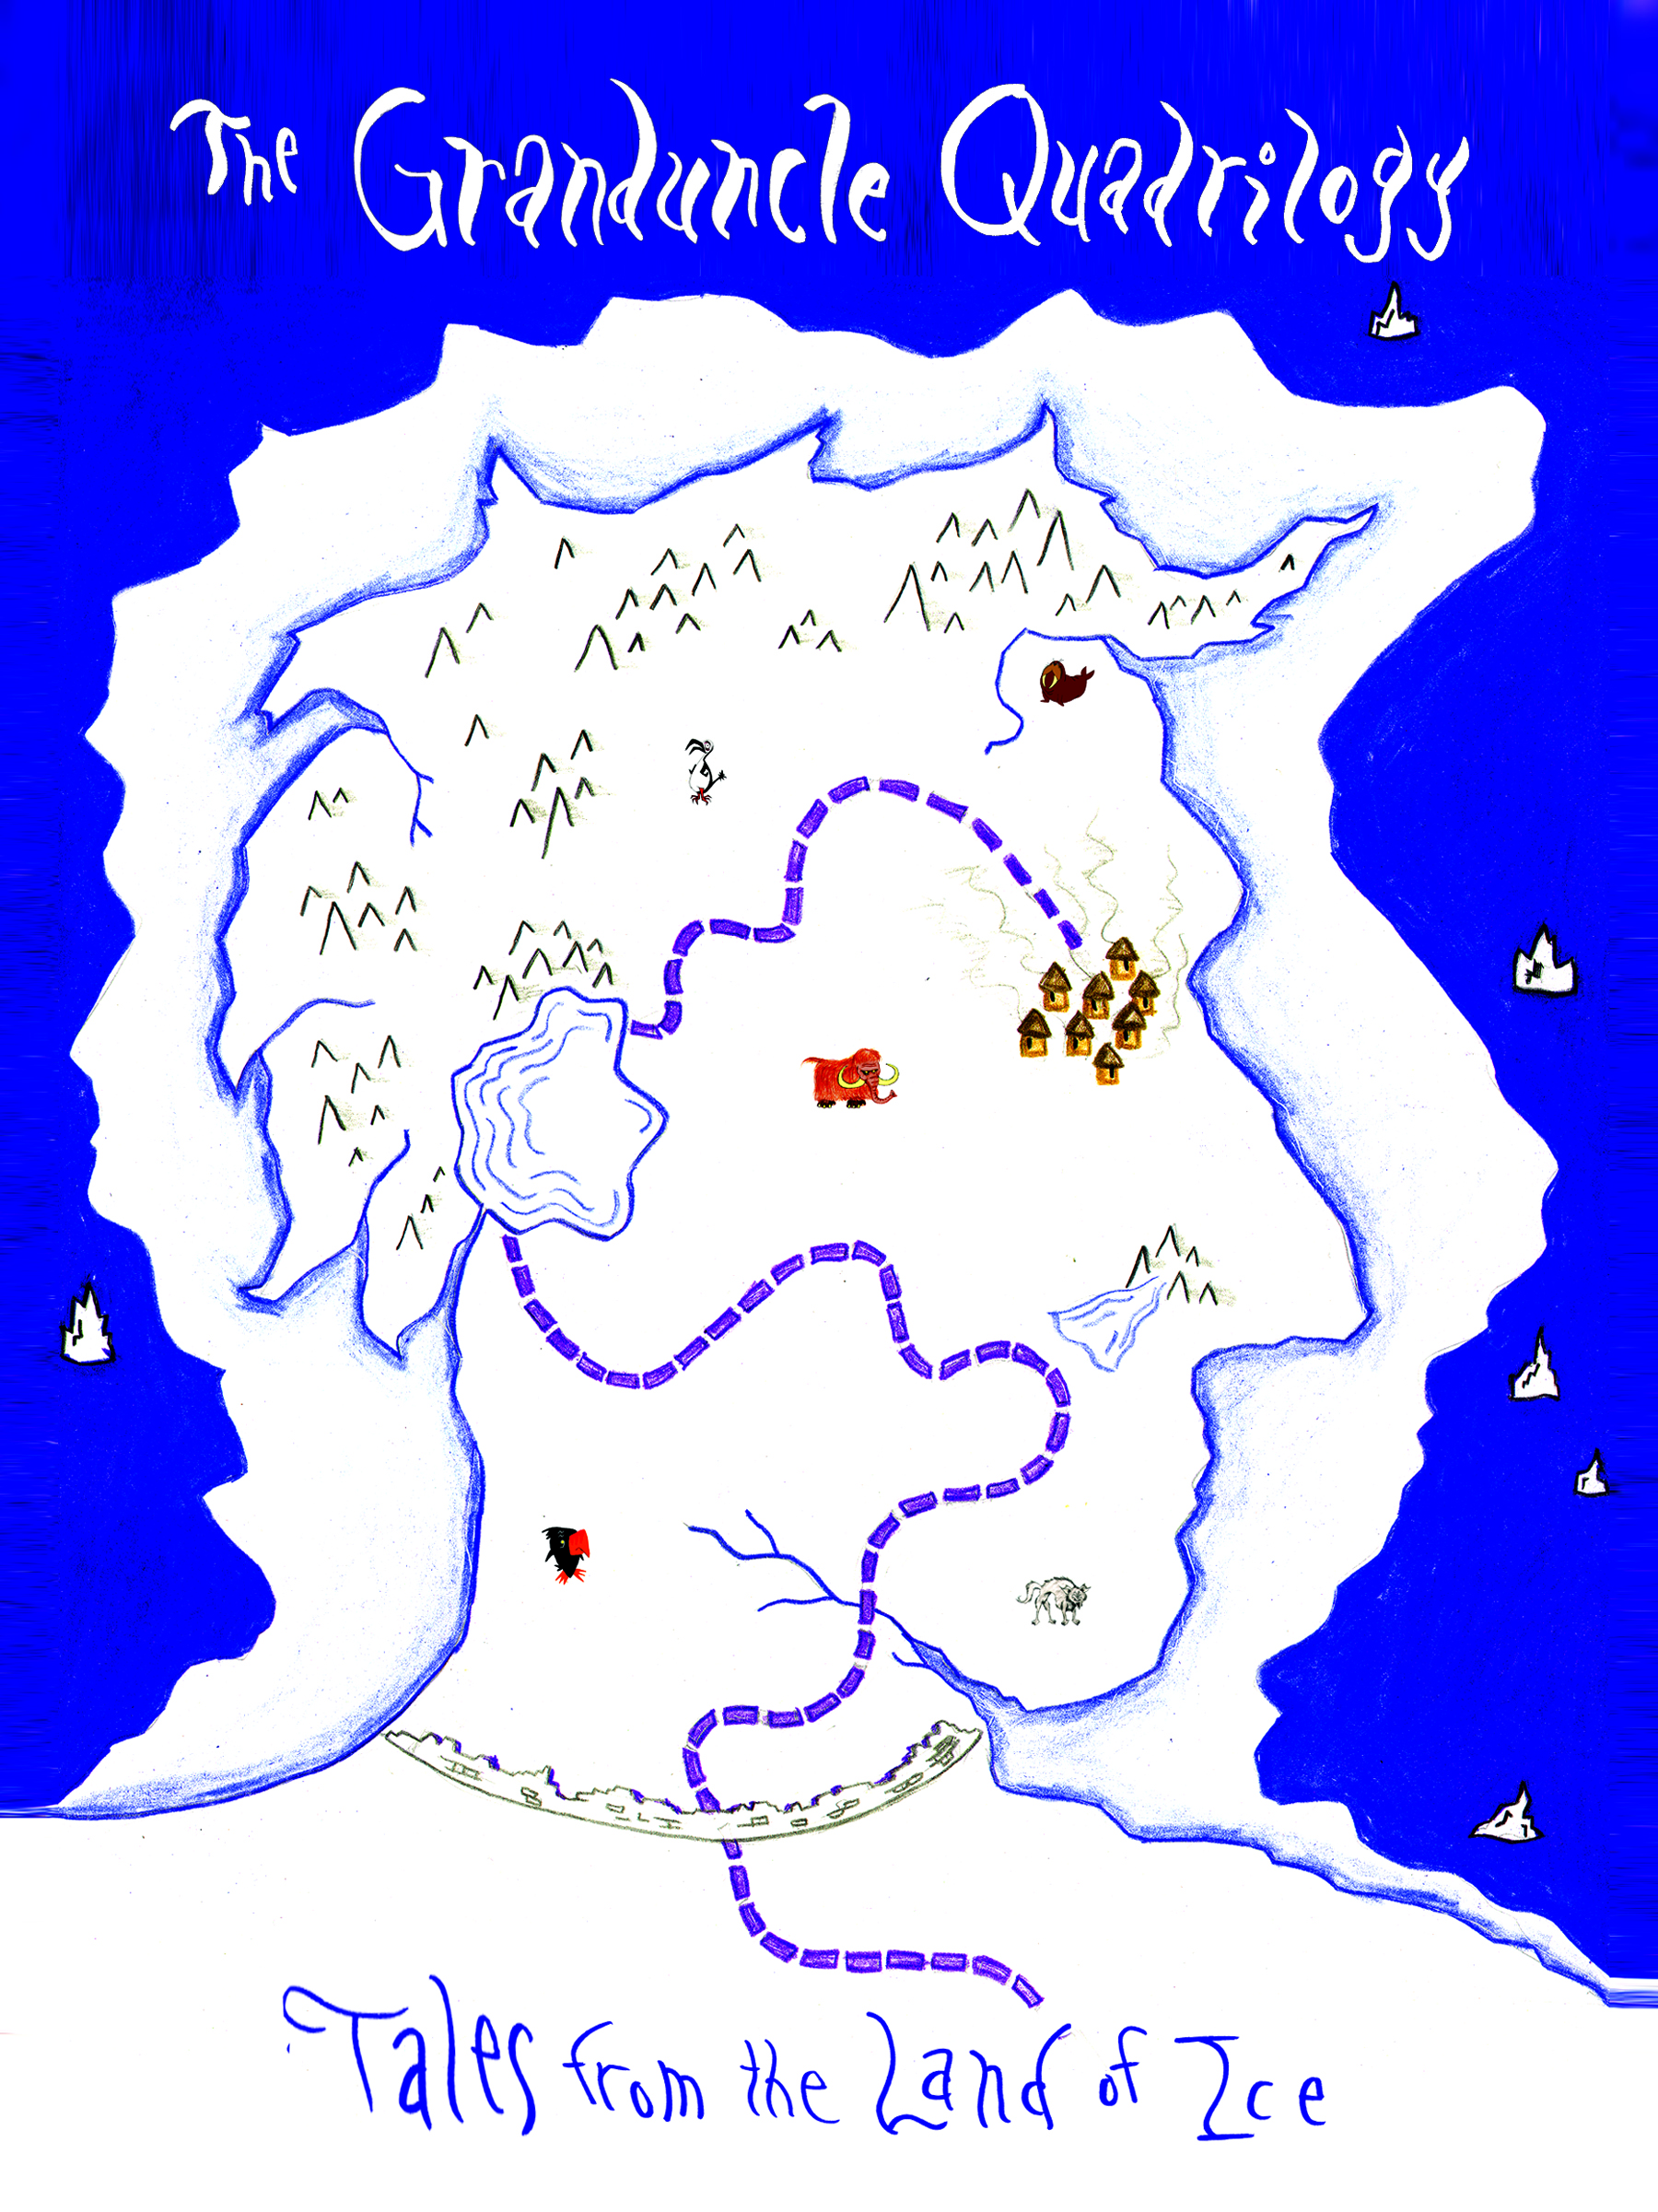 THE GRANDUNCLE QUADRILOGY: TALES FROM THE LAND OF ICE